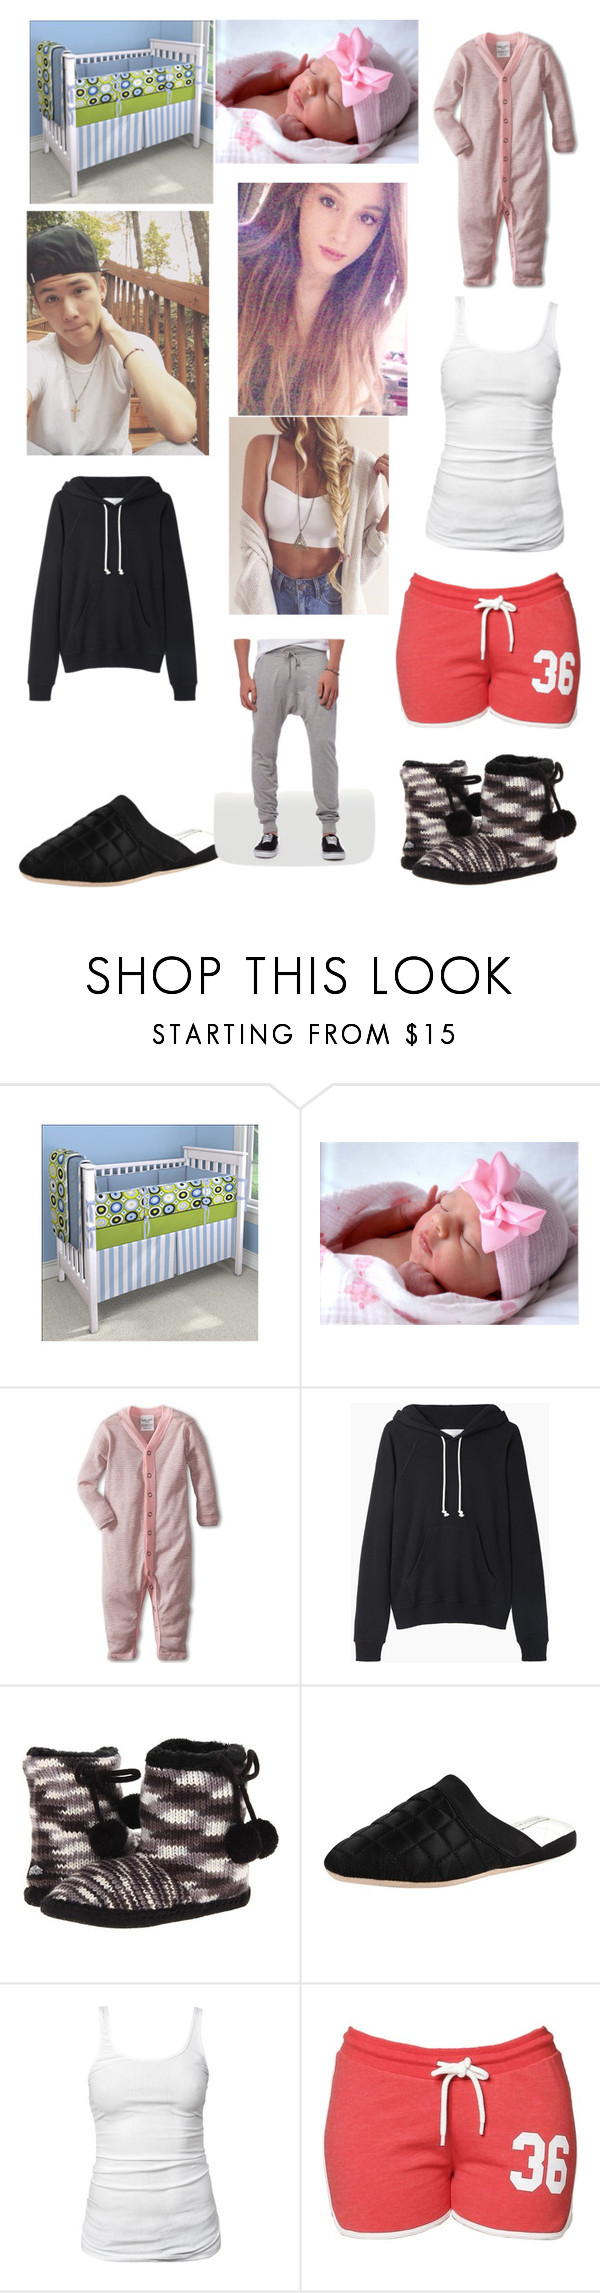 """""""Me and my 2 Bae's"""" by nellier13 ❤ liked on Polyvore featuring Splendid Littles, La Garçonne Moderne, Vans, Patricia Green, James Perse, TWINTIP, women's clothing, women's fashion, women and female"""